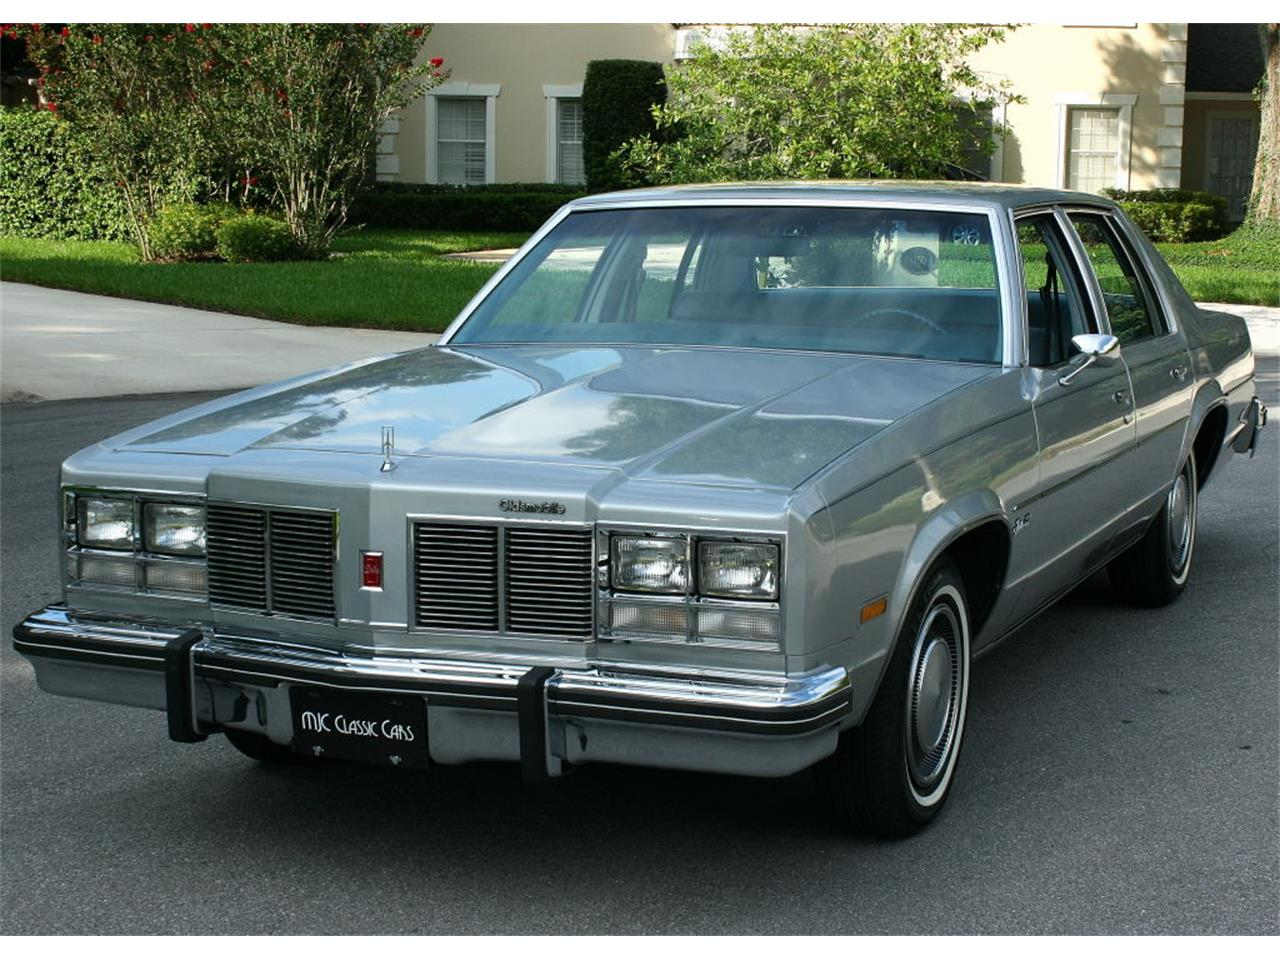 Large Picture of '77 Oldsmobile Delta 88 located in lakeland Florida - $12,500.00 Offered by MJC Classic Cars - LFEK